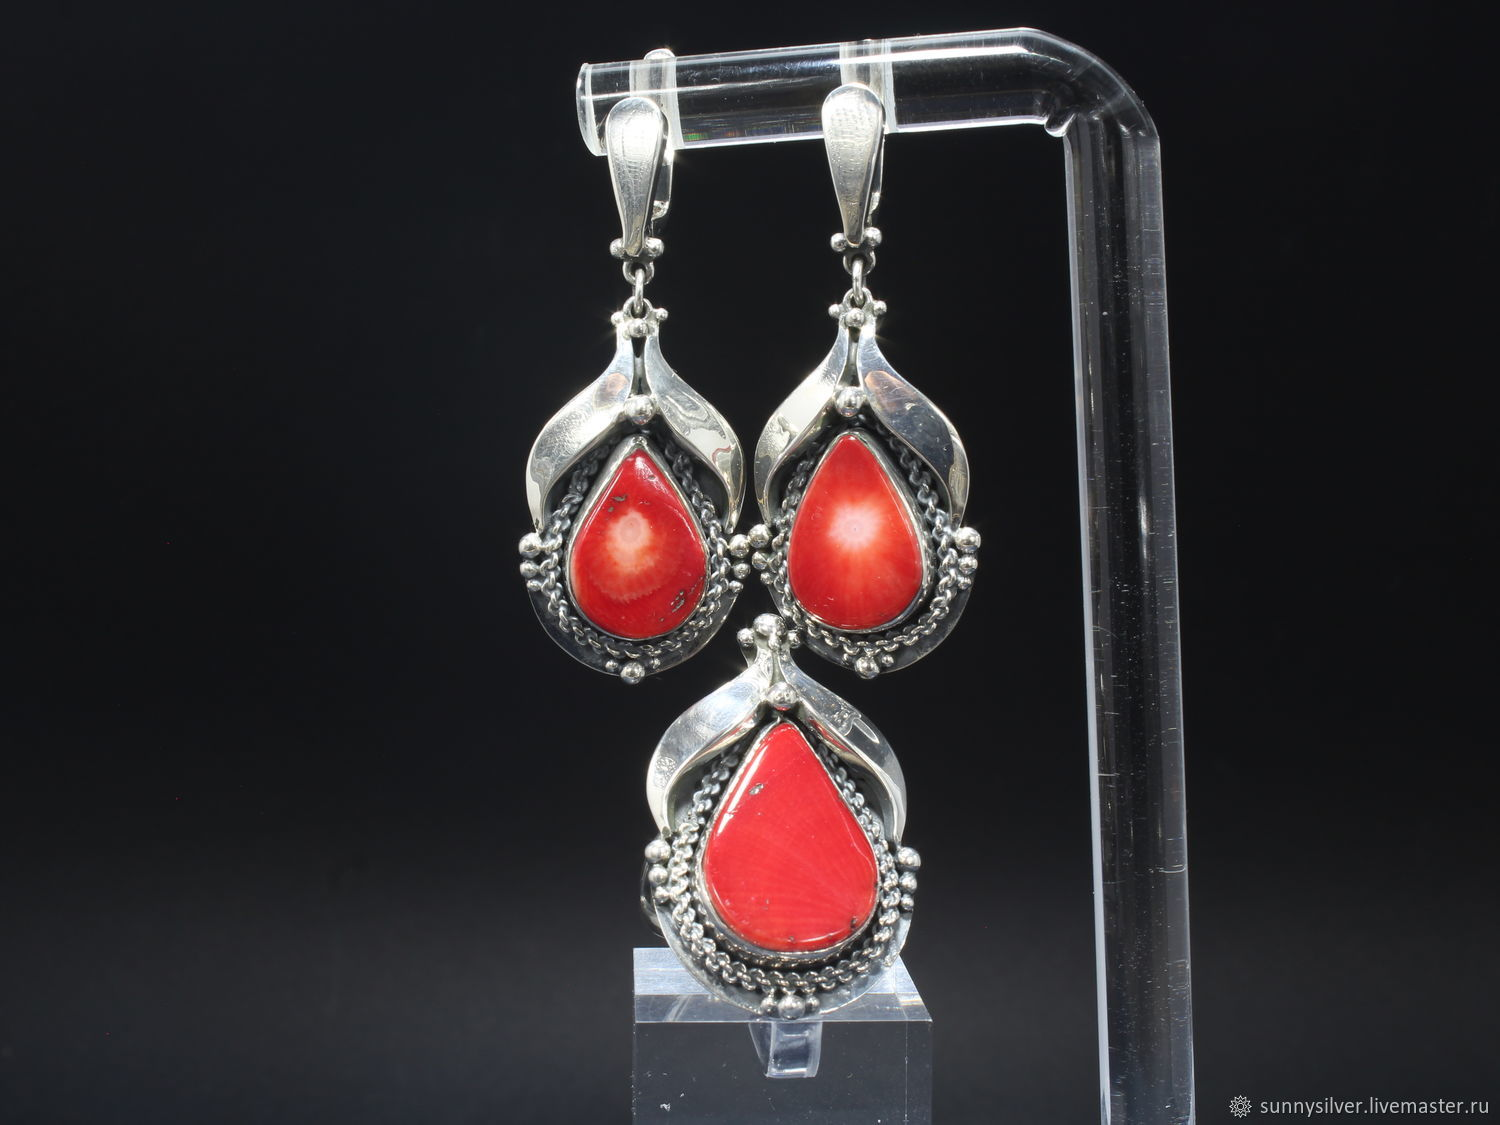 Belladonna jewelry Set with coral in 925 silver HH0017, Jewelry Sets, Yerevan,  Фото №1